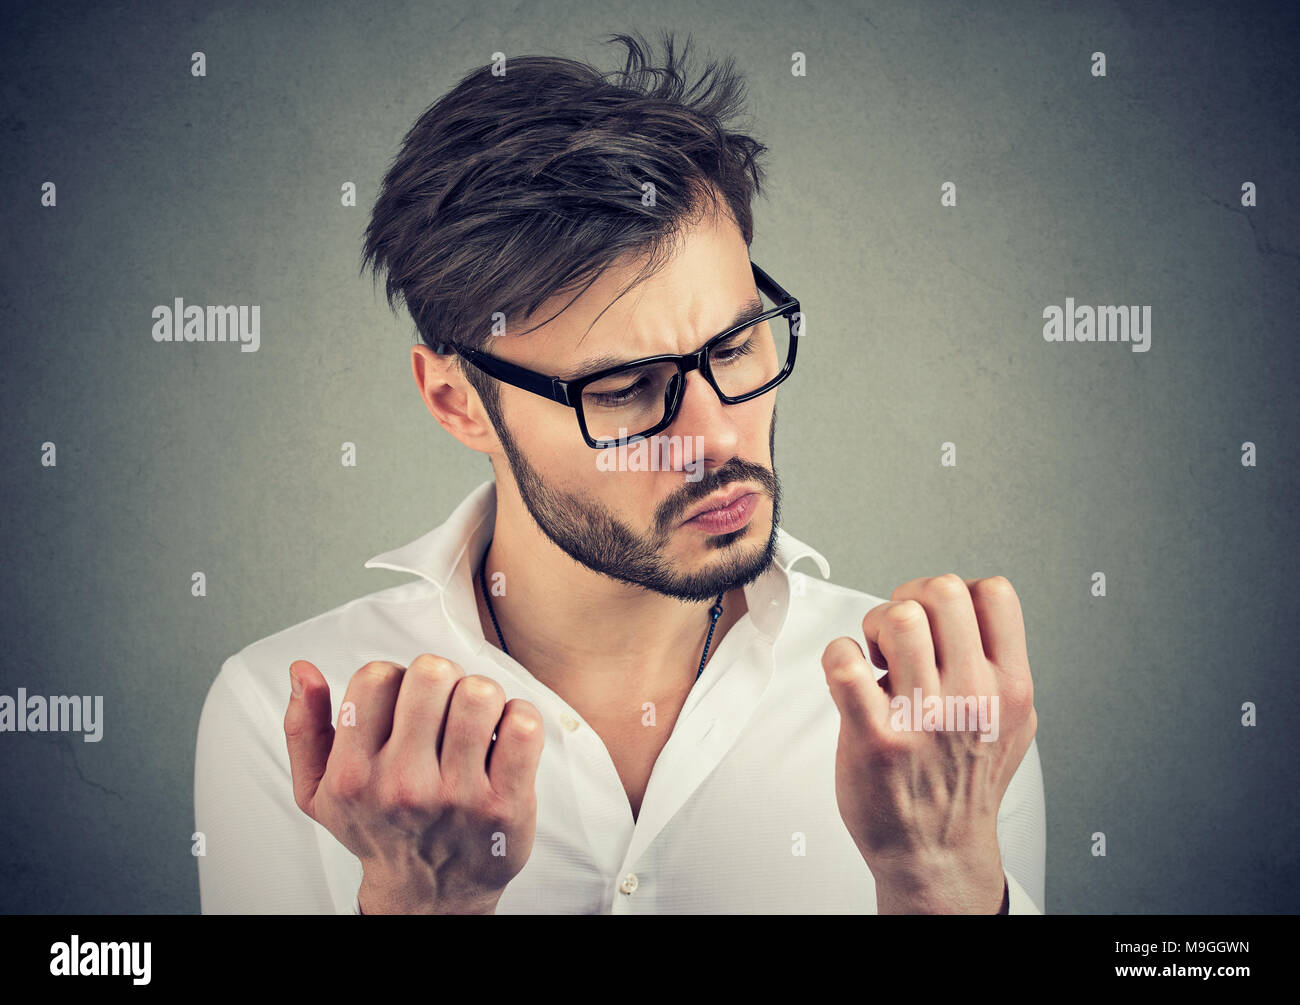 Young serious man with obsessive compulsive disorder exploring cleanliness of hands. - Stock Image